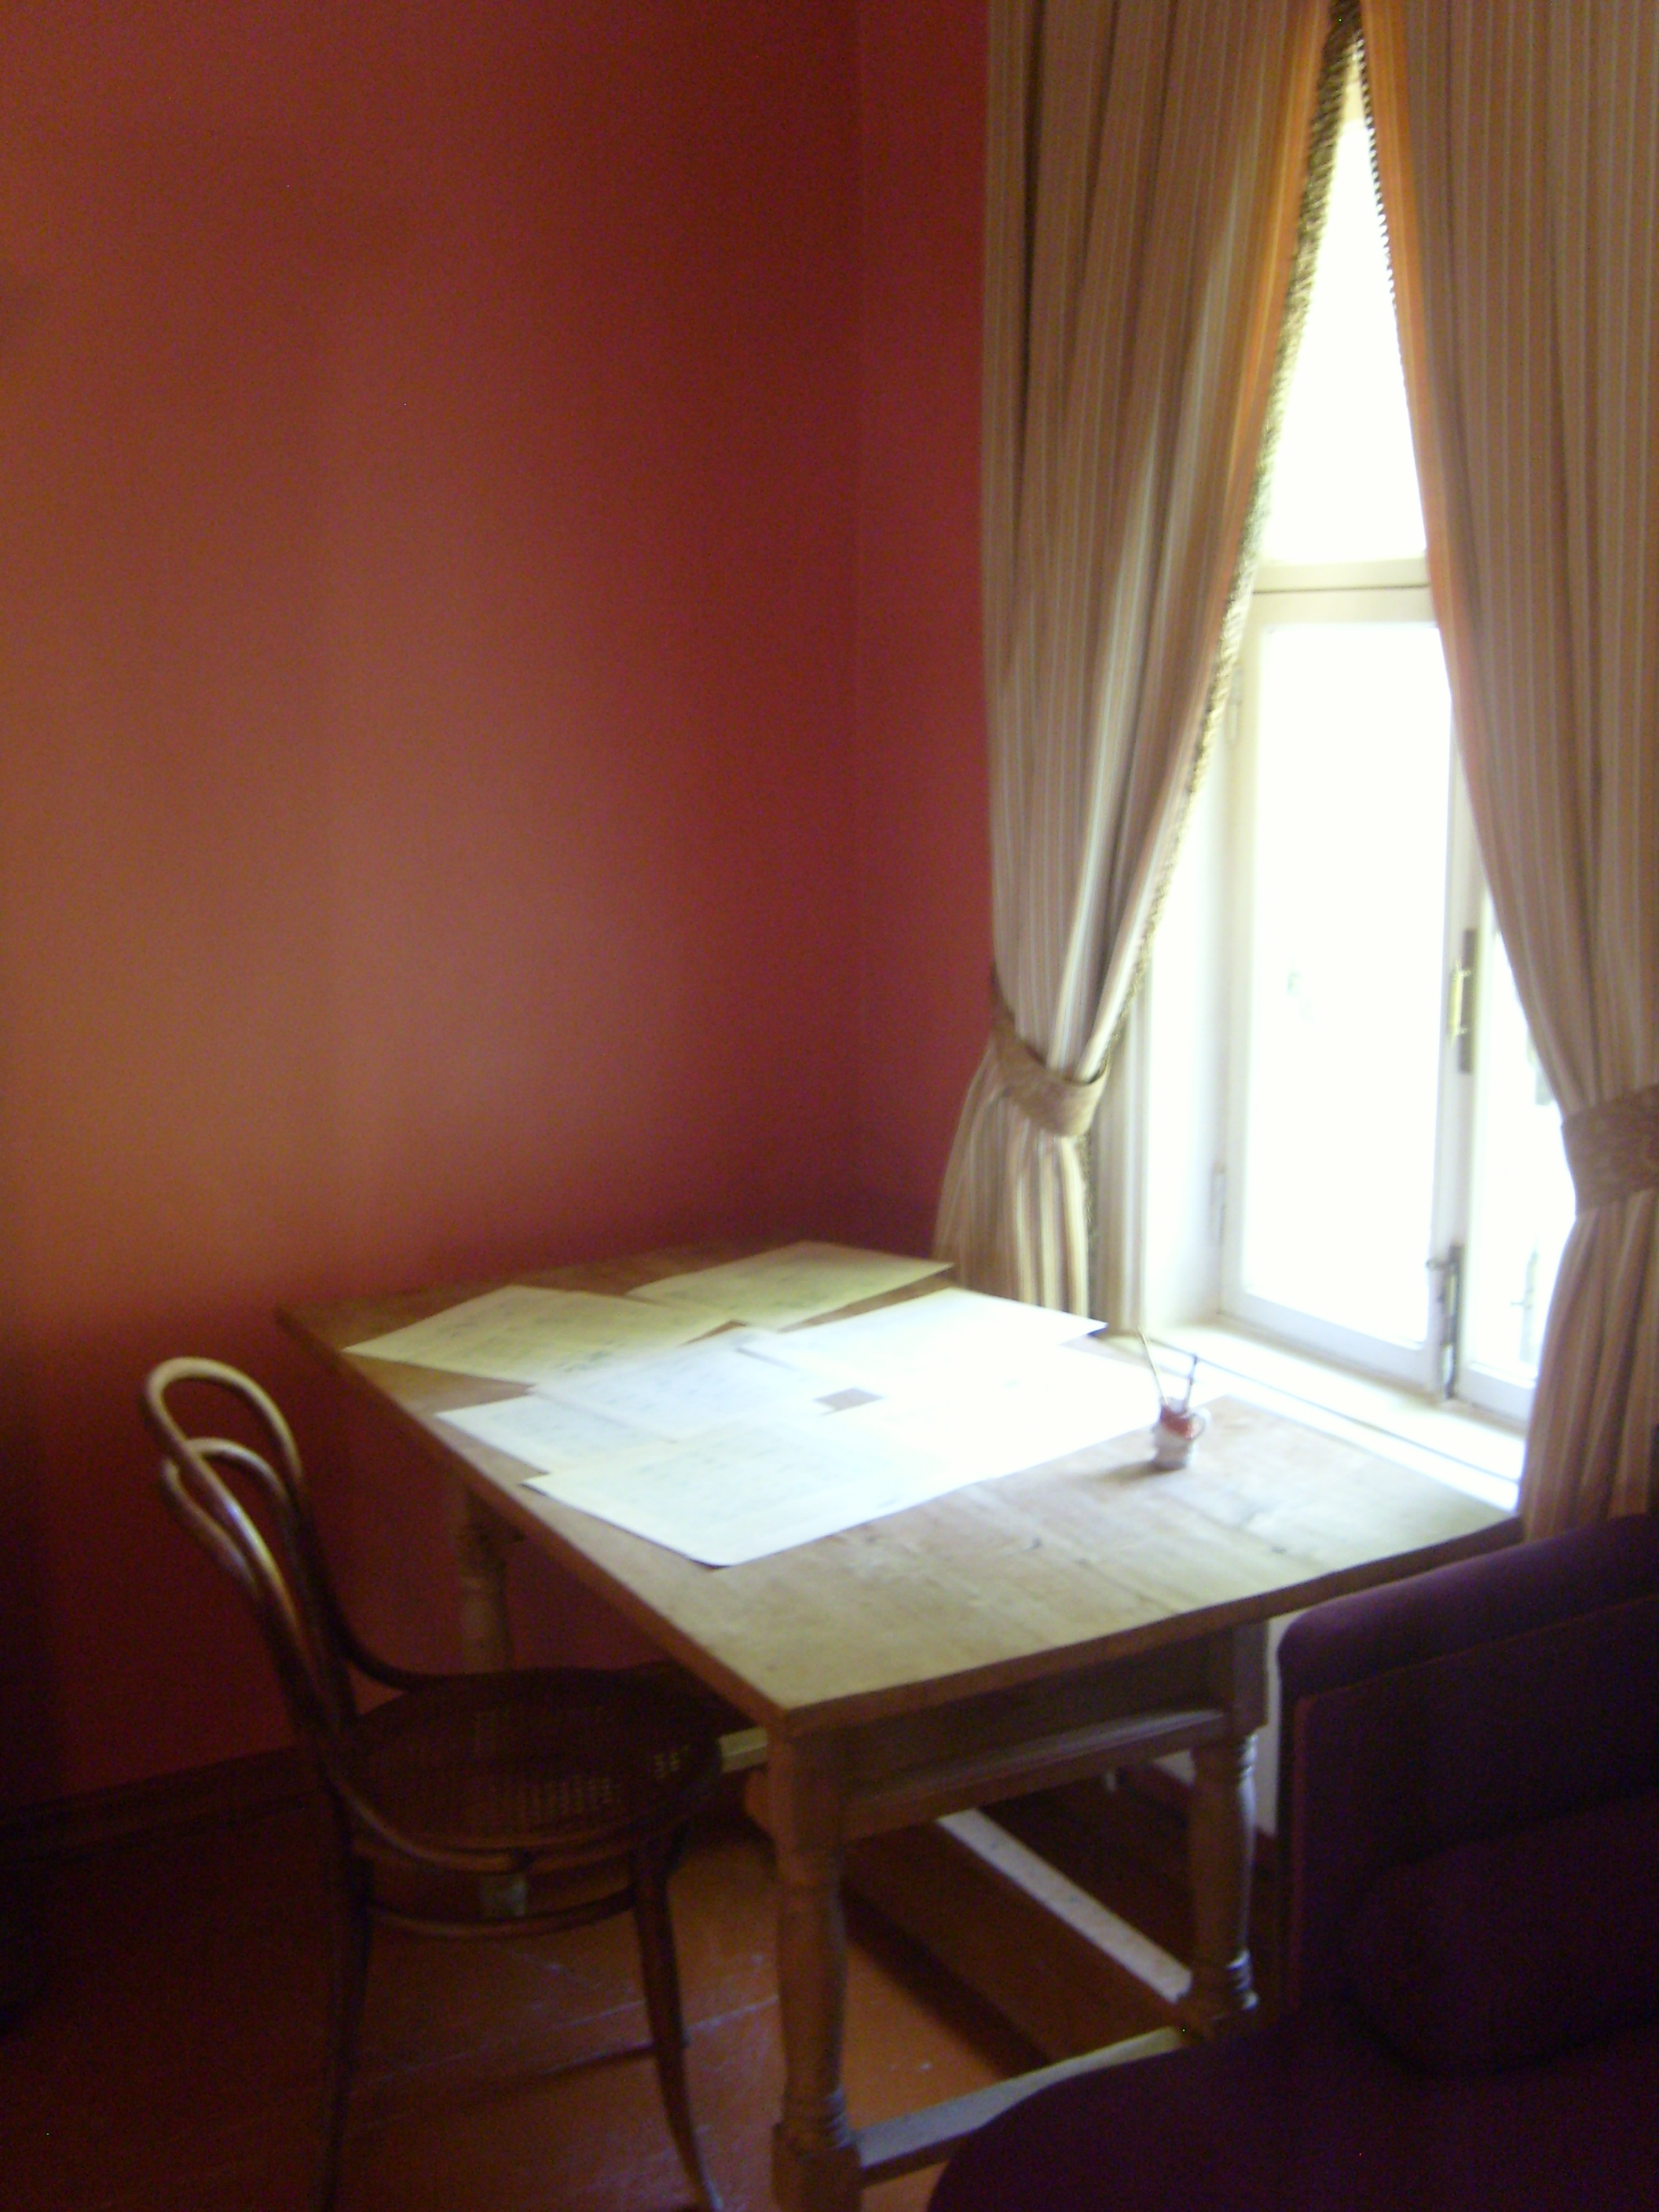 file tchaikovsky house museum bedroom table jpg wikimedia commons file tchaikovsky house museum bedroom table jpg